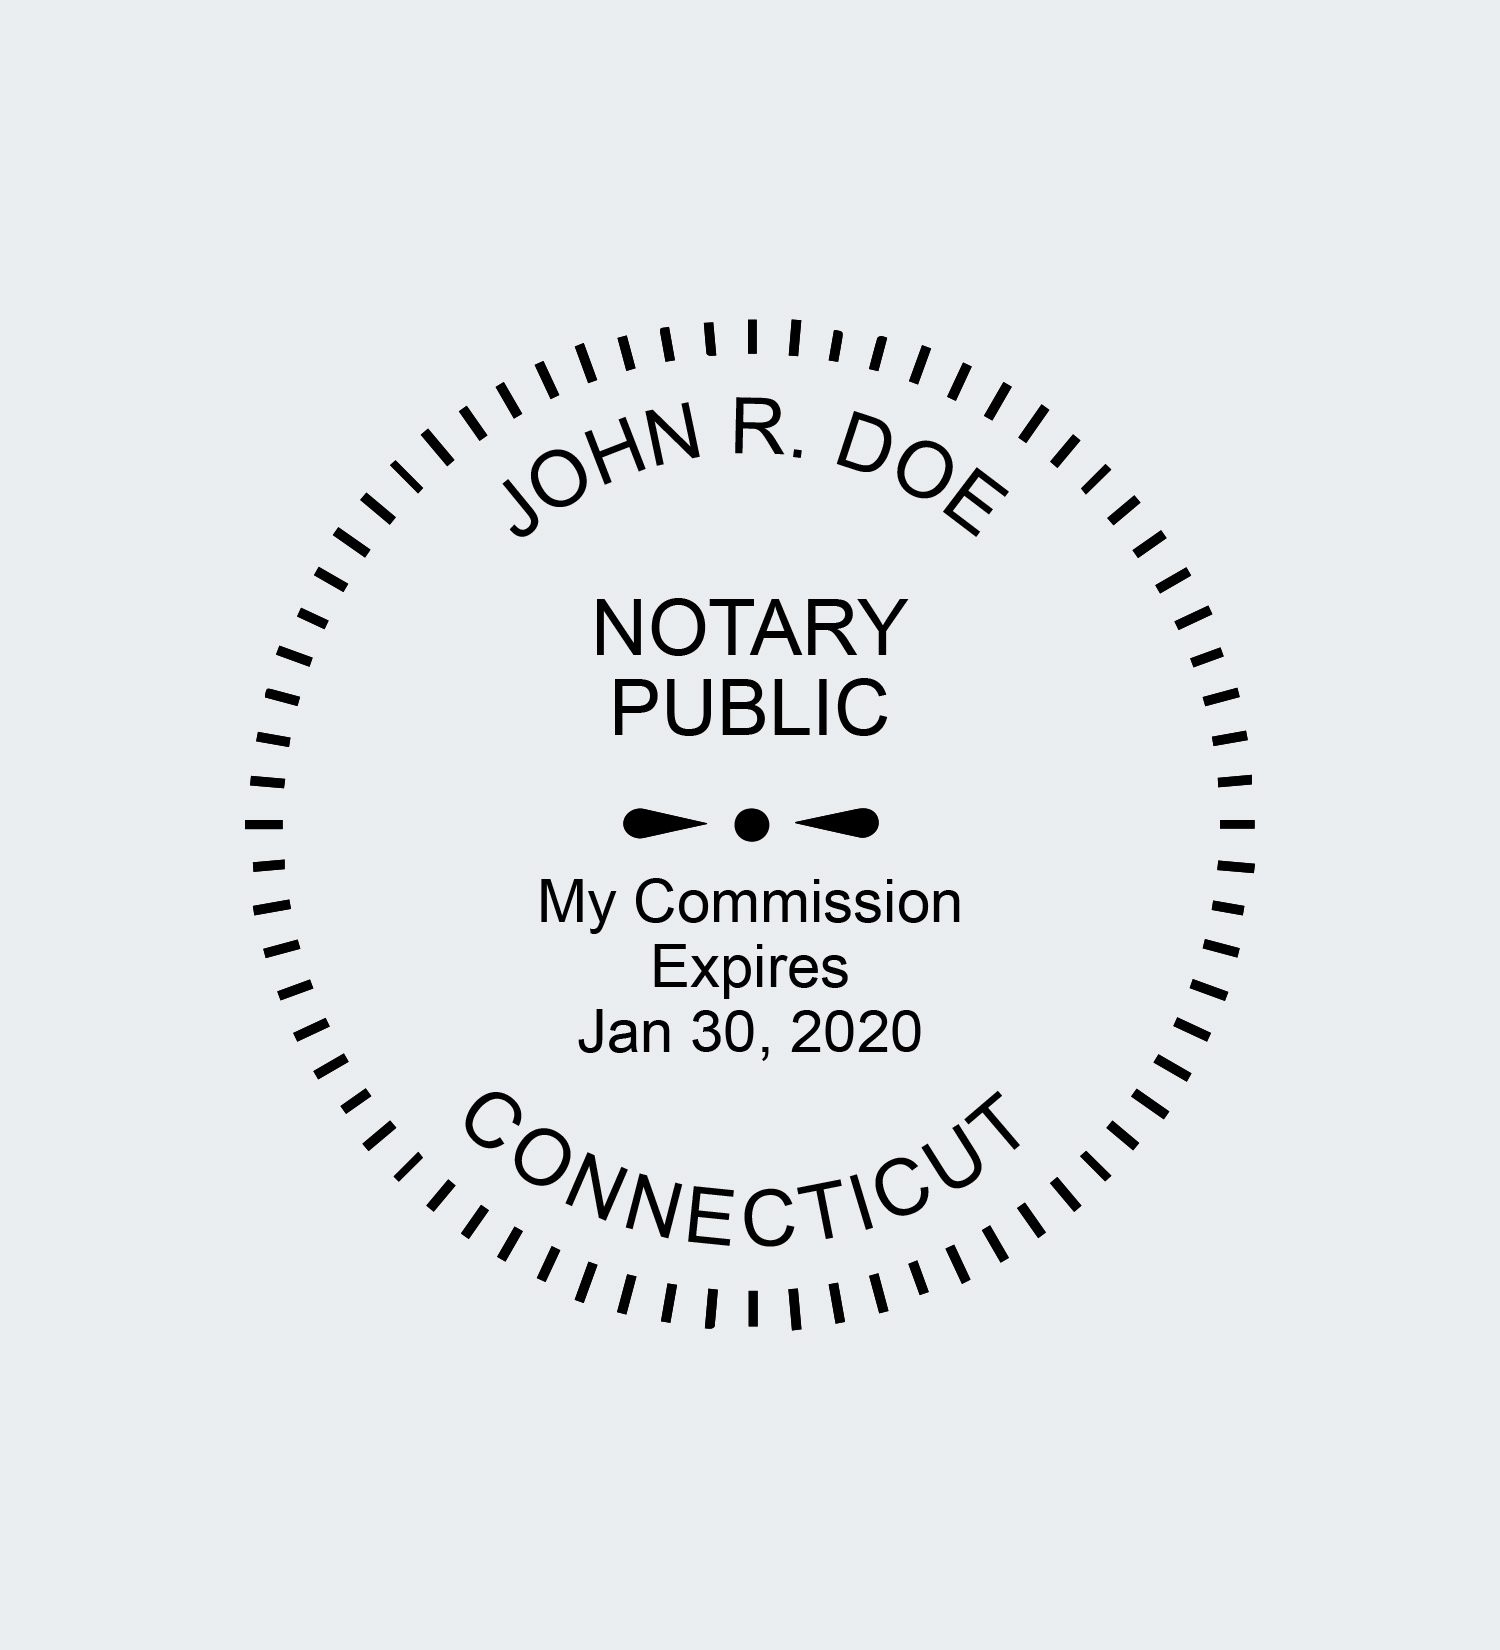 Connecticut Notary Seals Nna Howto:texas